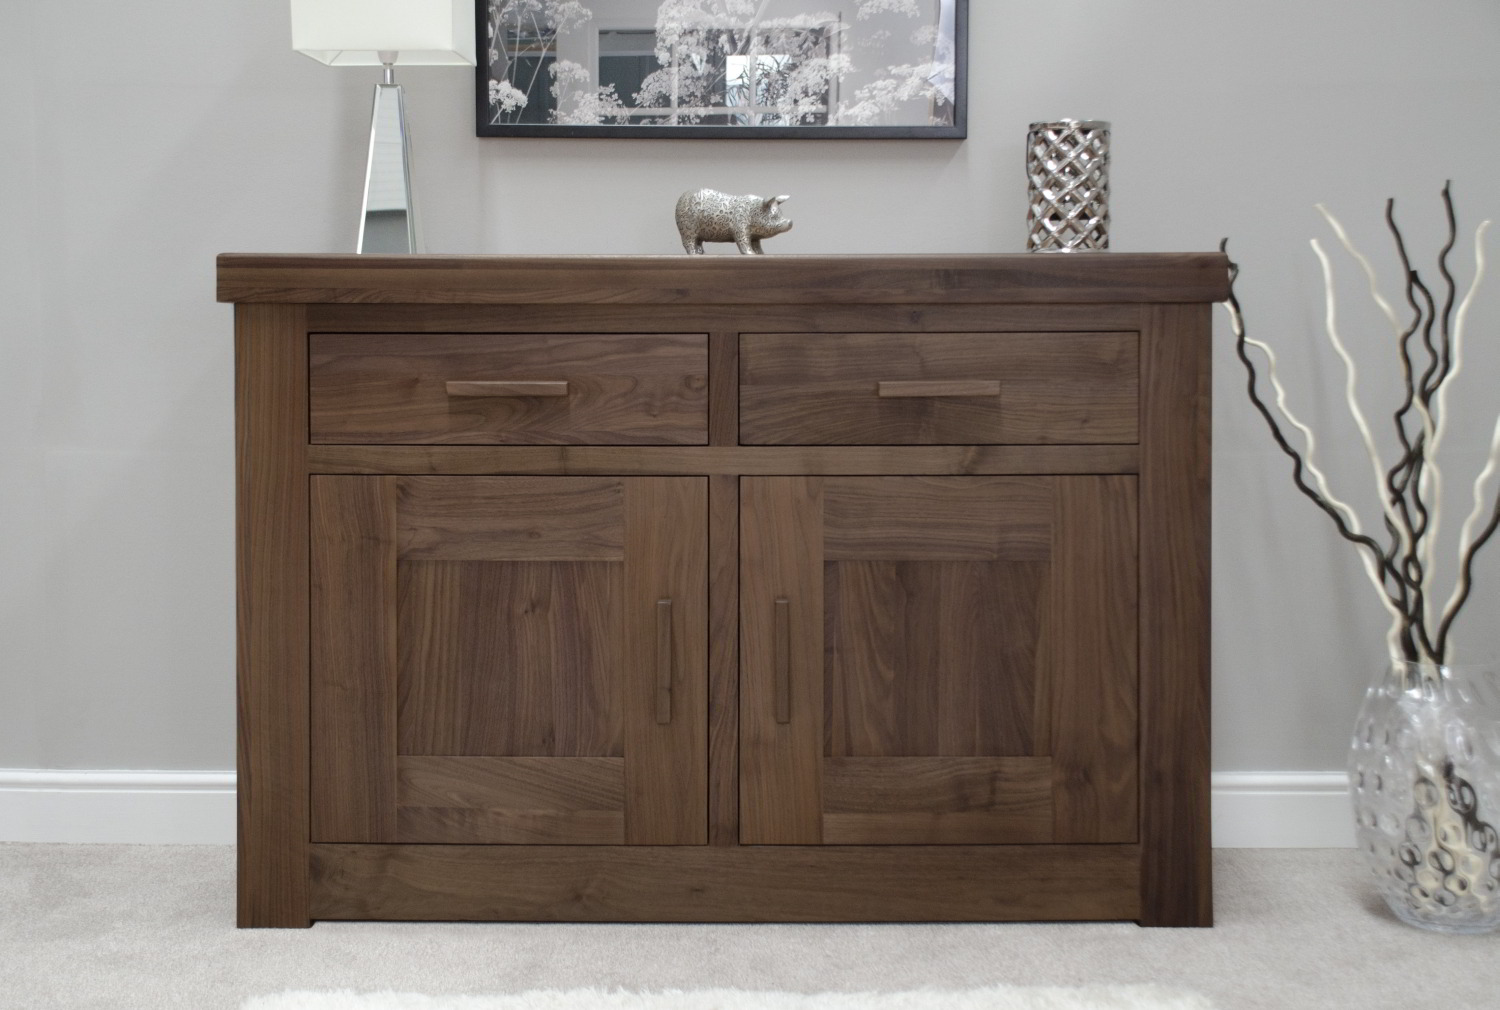 Kendo Solid Modern Walnut Living Dining Room Furniture Small Sideboard EBay